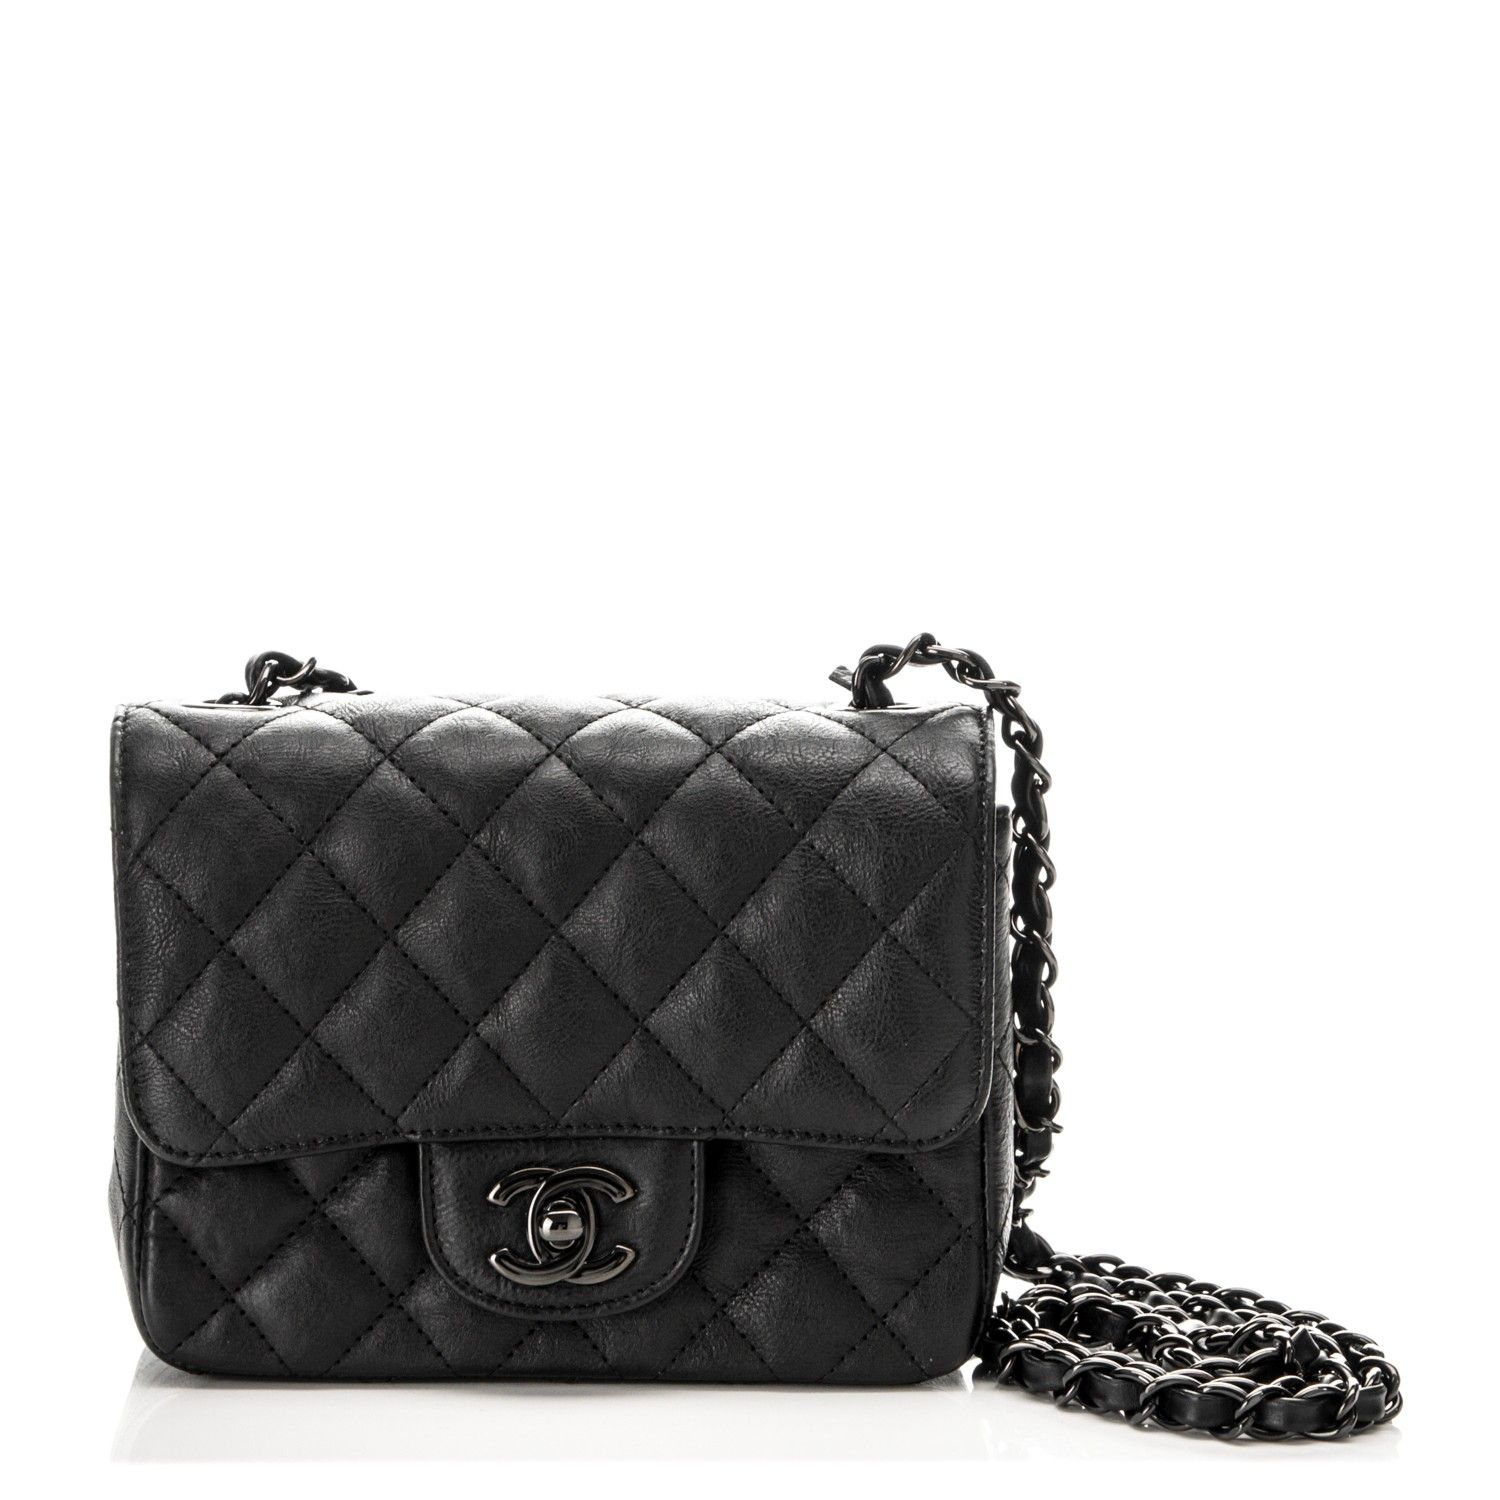 afc4ca8d0c6fc7 CHANEL Crumpled Calfskin Quilted Mini Square Flap So Black | Want ...